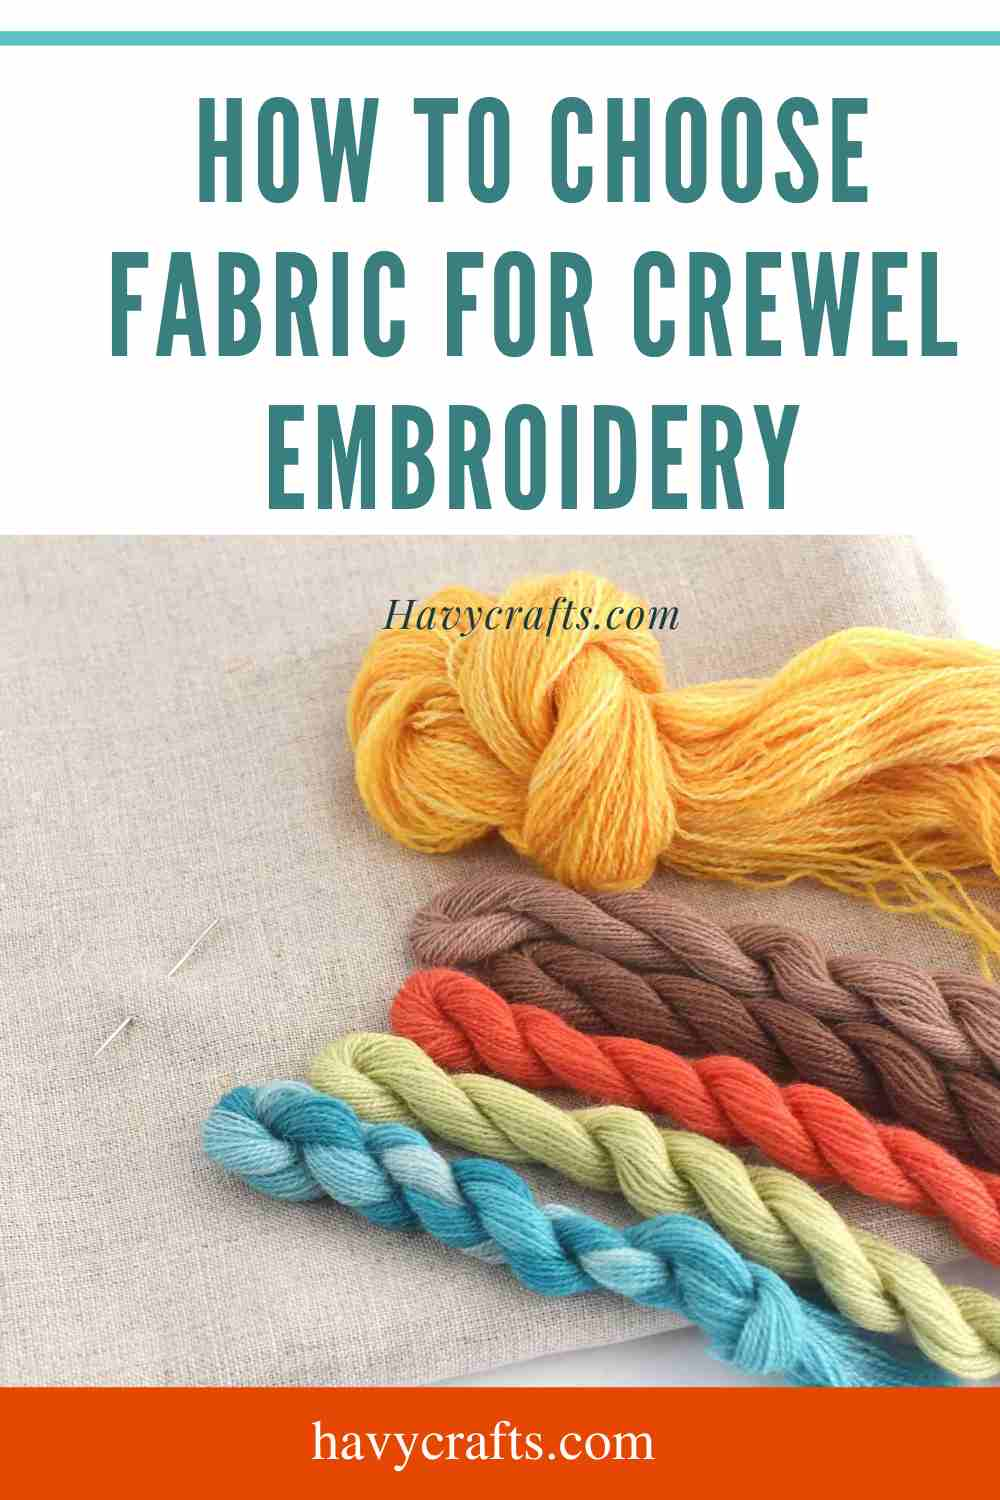 How to Choose Fabric for Crewel Embroidery